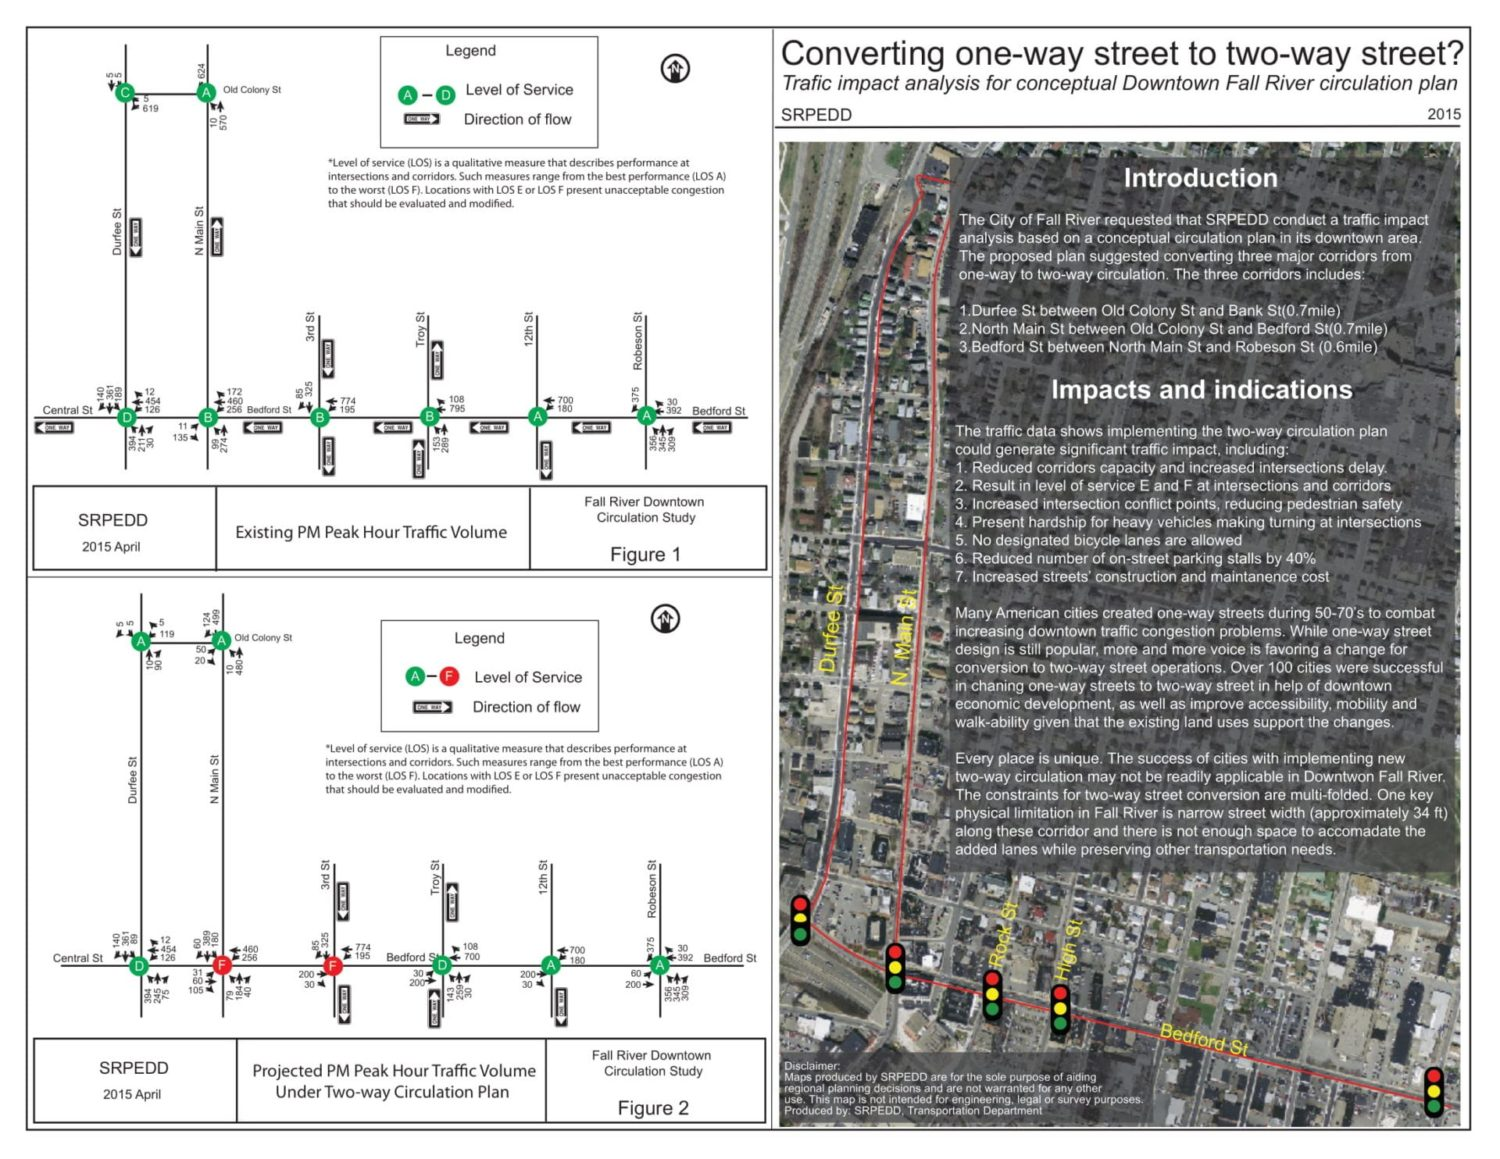 Impact of Converting one-way street to two-way street in Fall River